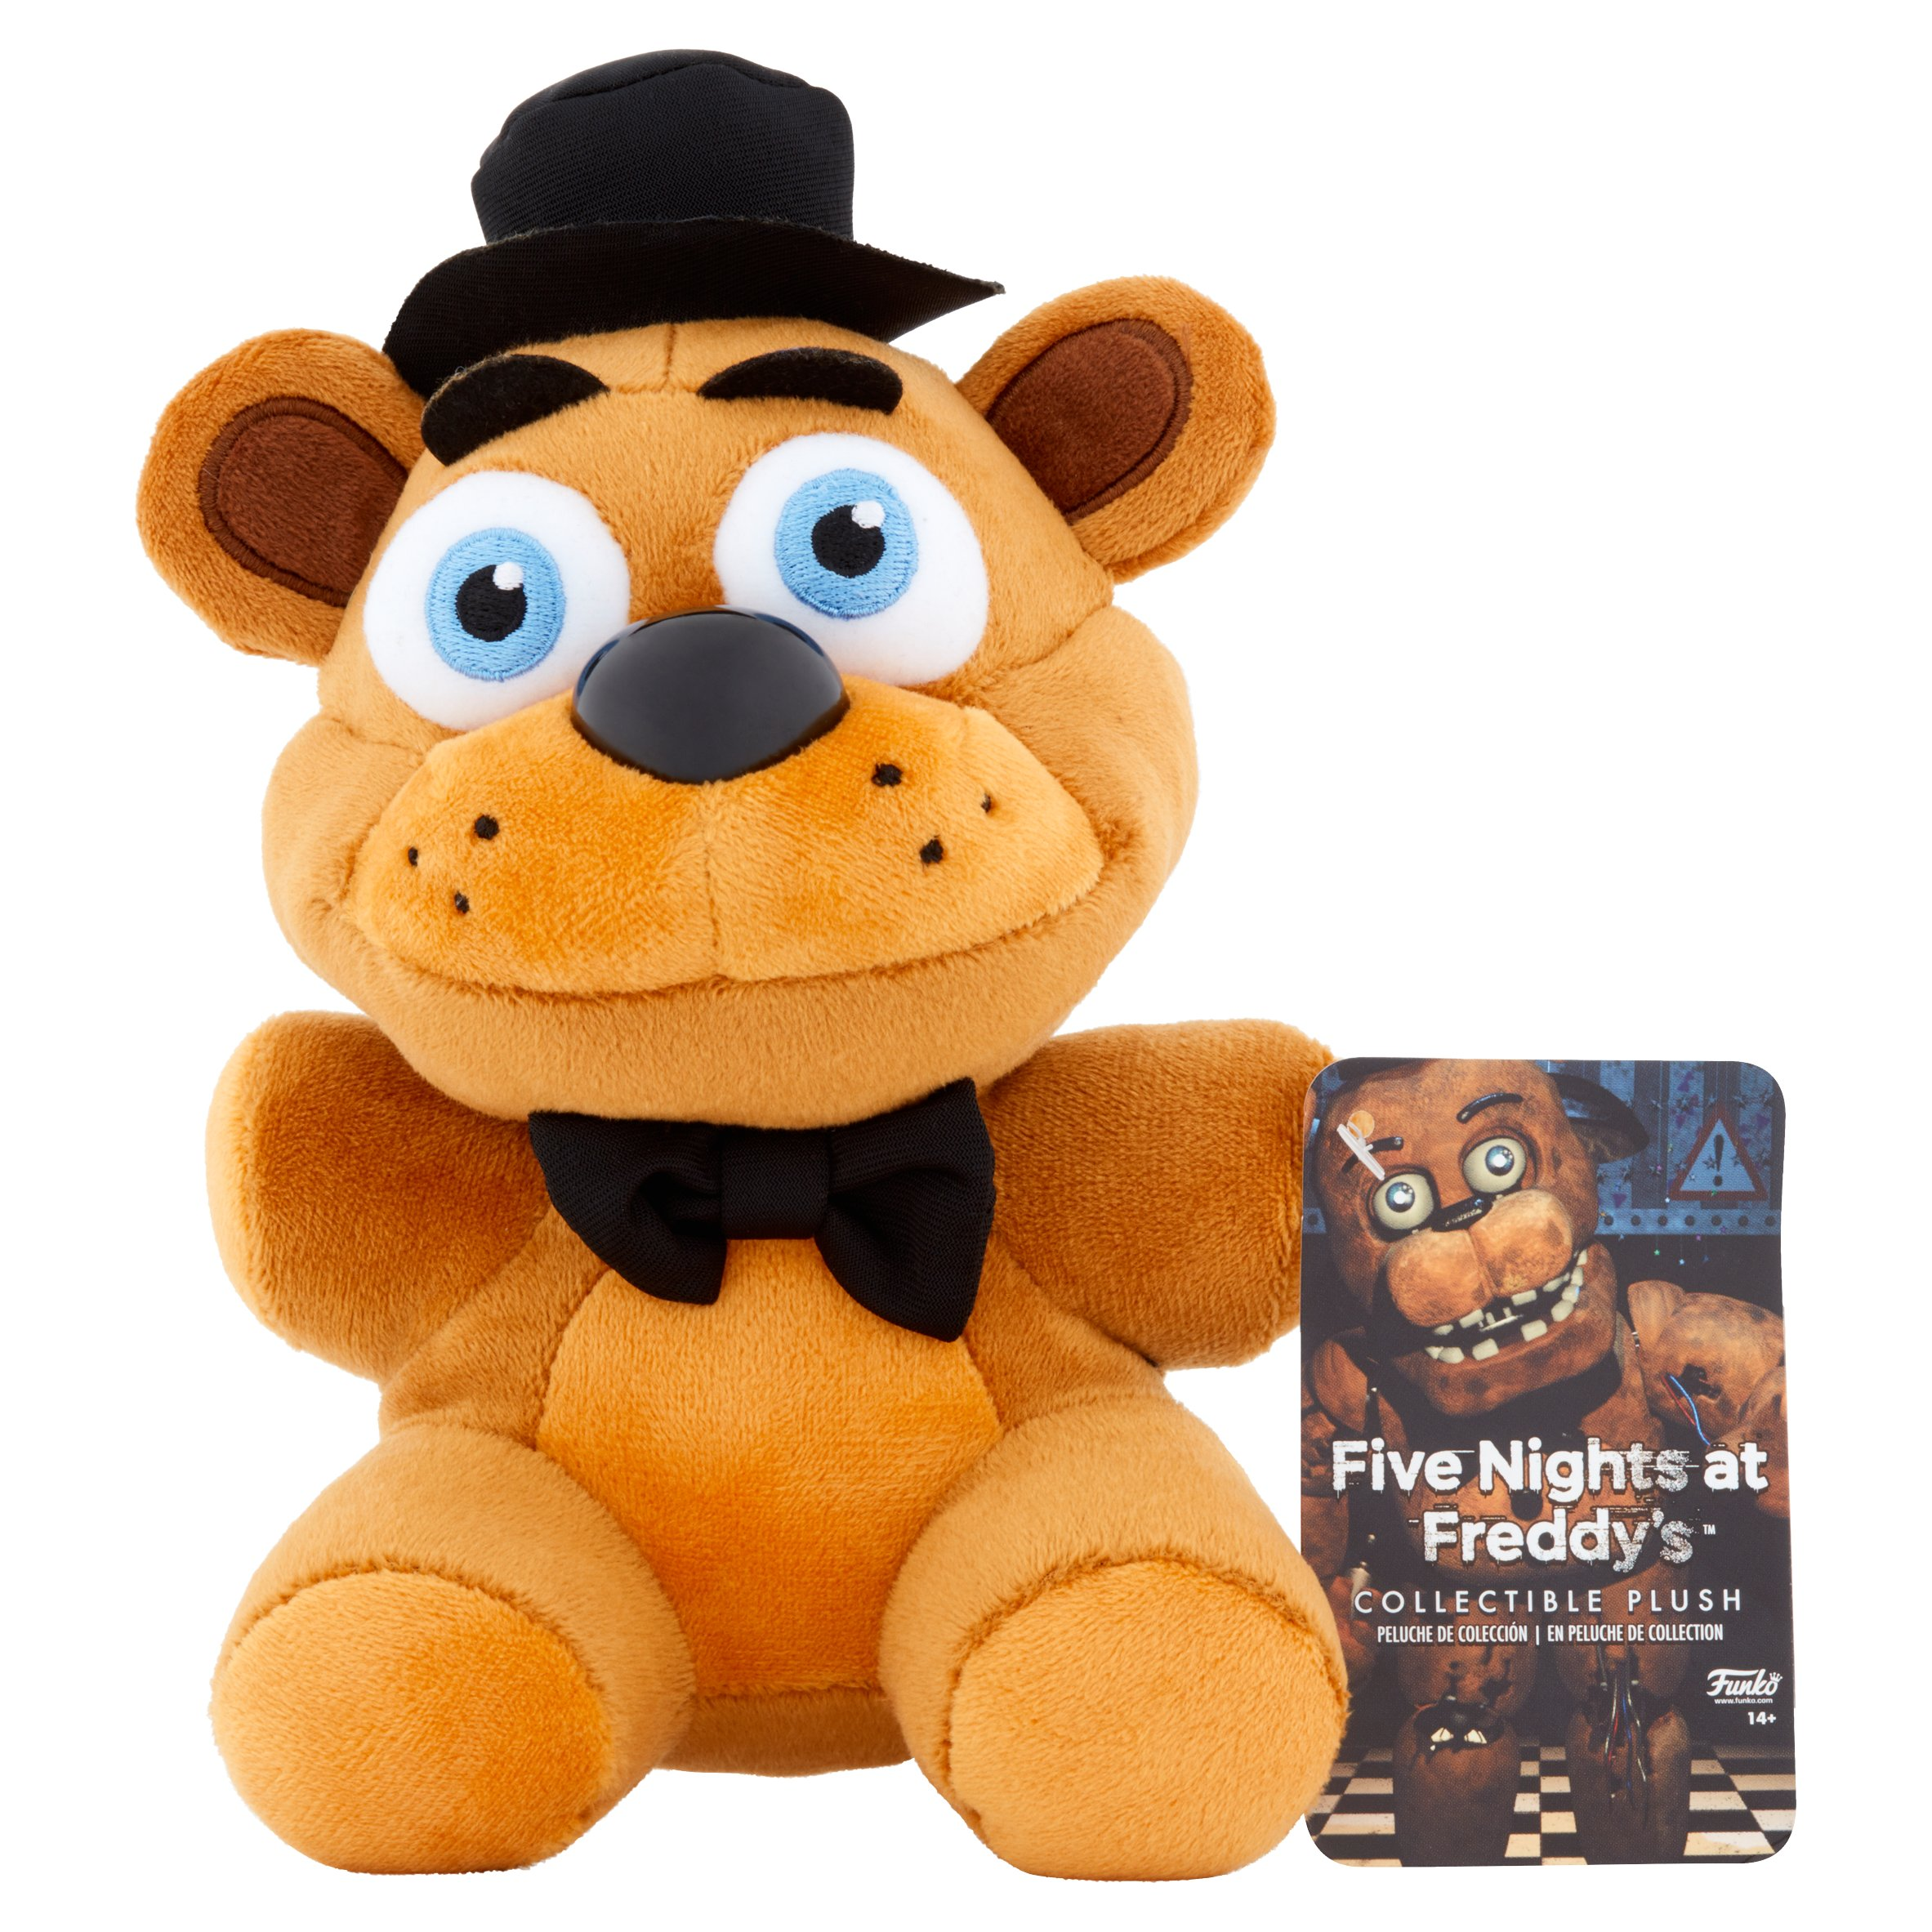 Funko: Five Nights at Freddy's - Freddy Collectible Plush